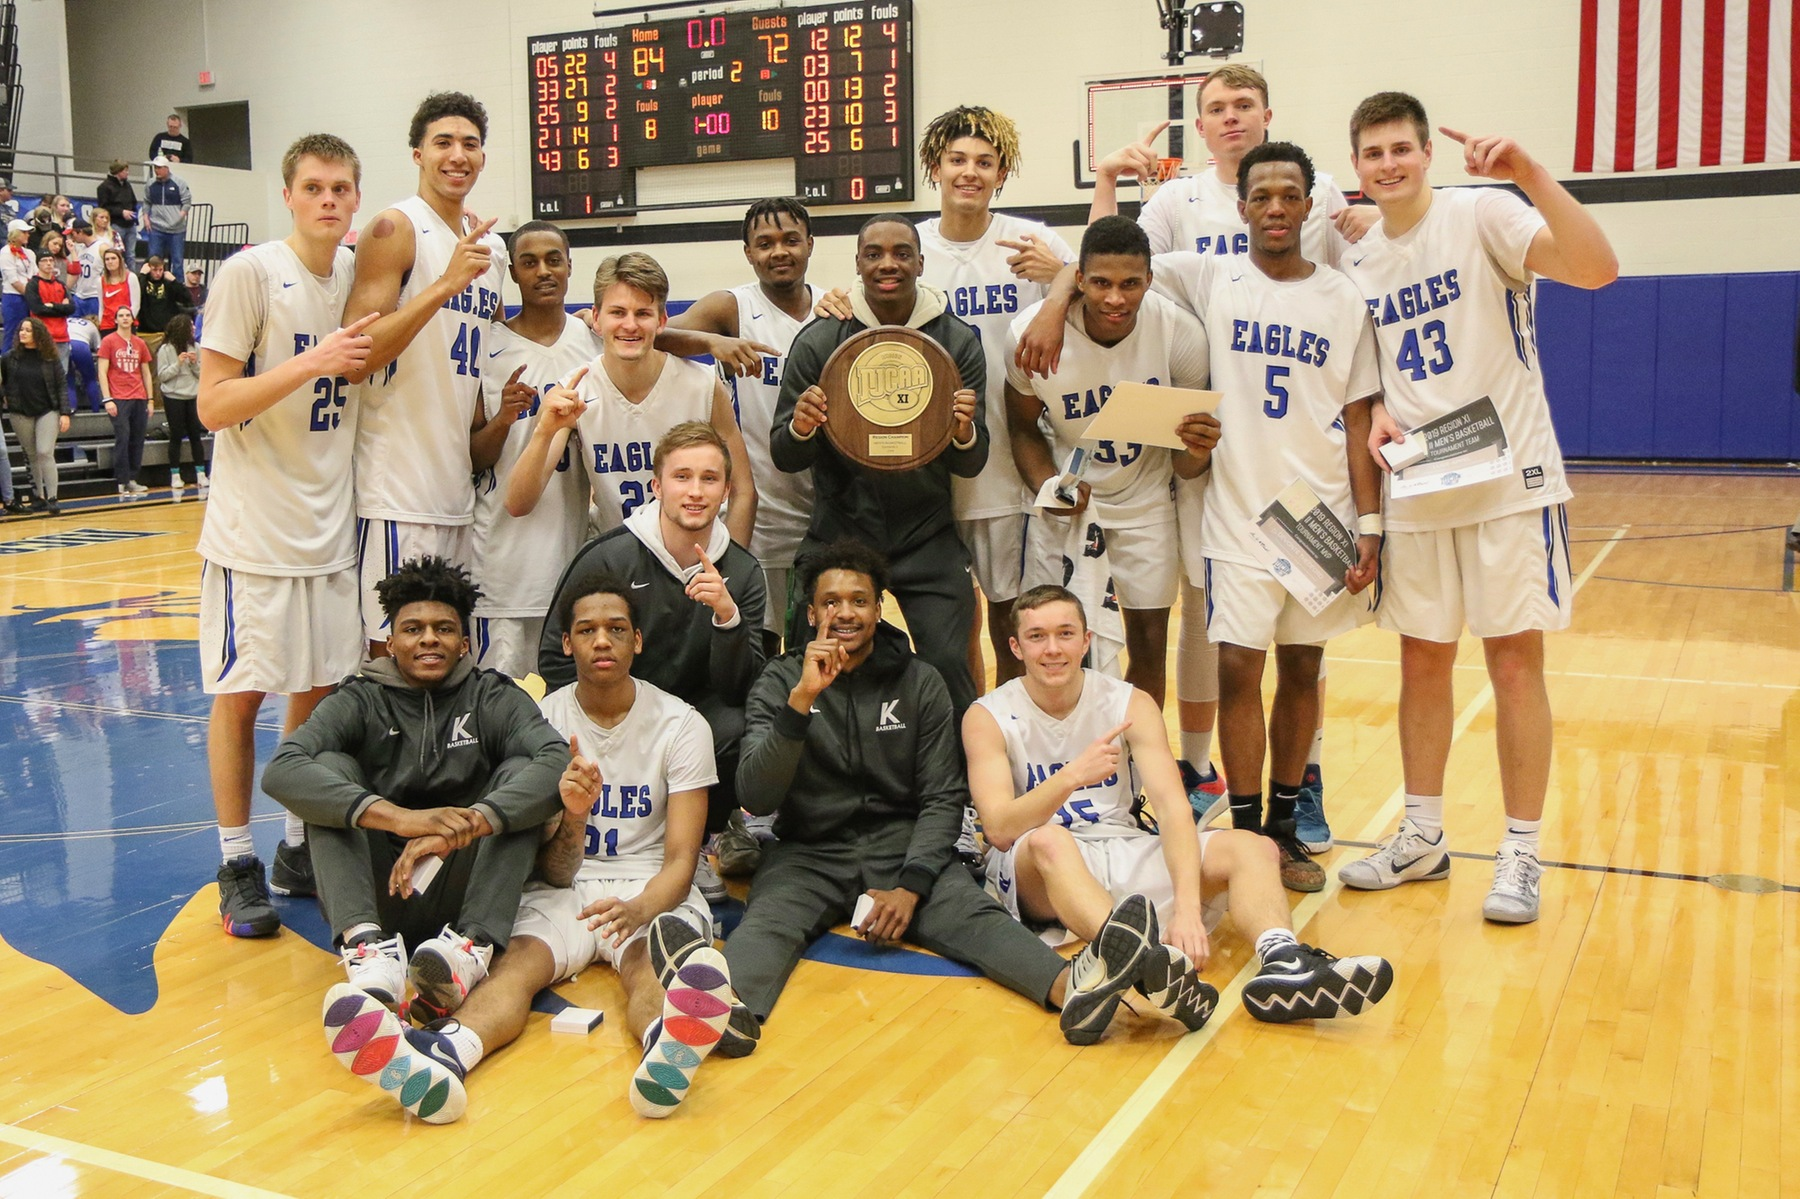 Kirkwood takes down NIACC to clinch berth in NJCAA national tournament